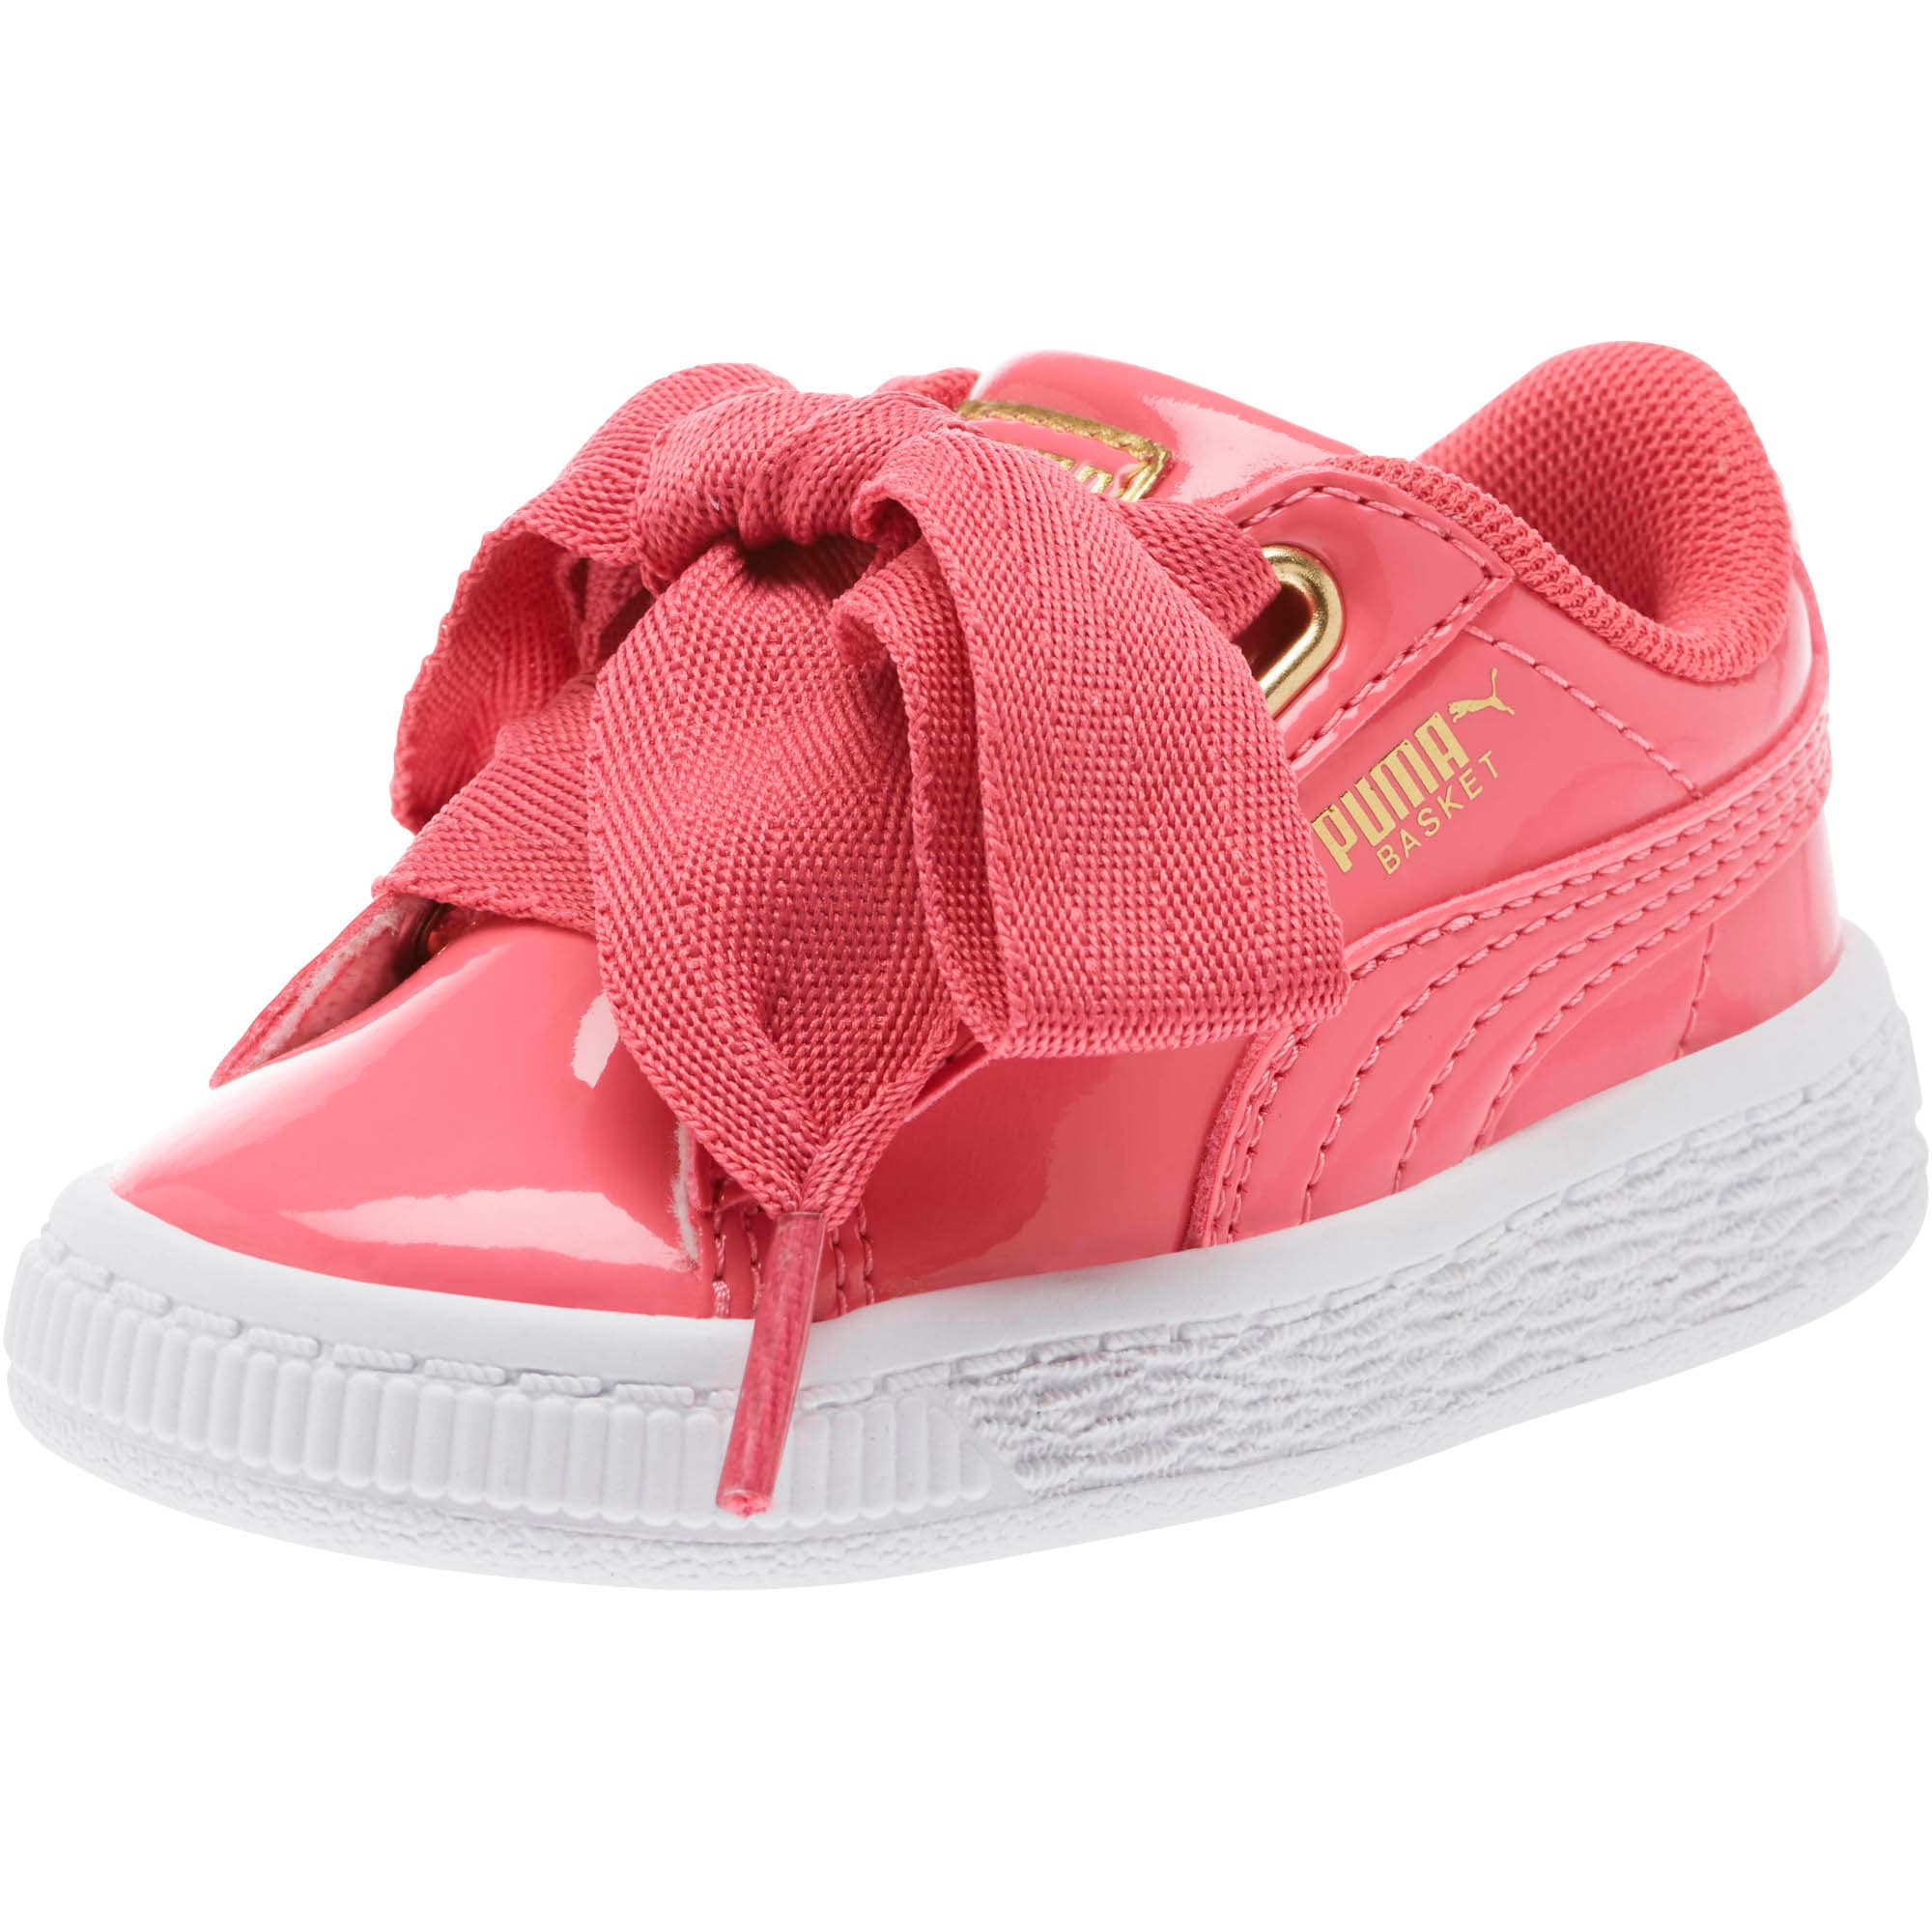 competitive price 1e648 f02ab Basket Heart Patent Gold Toddler' Shoes